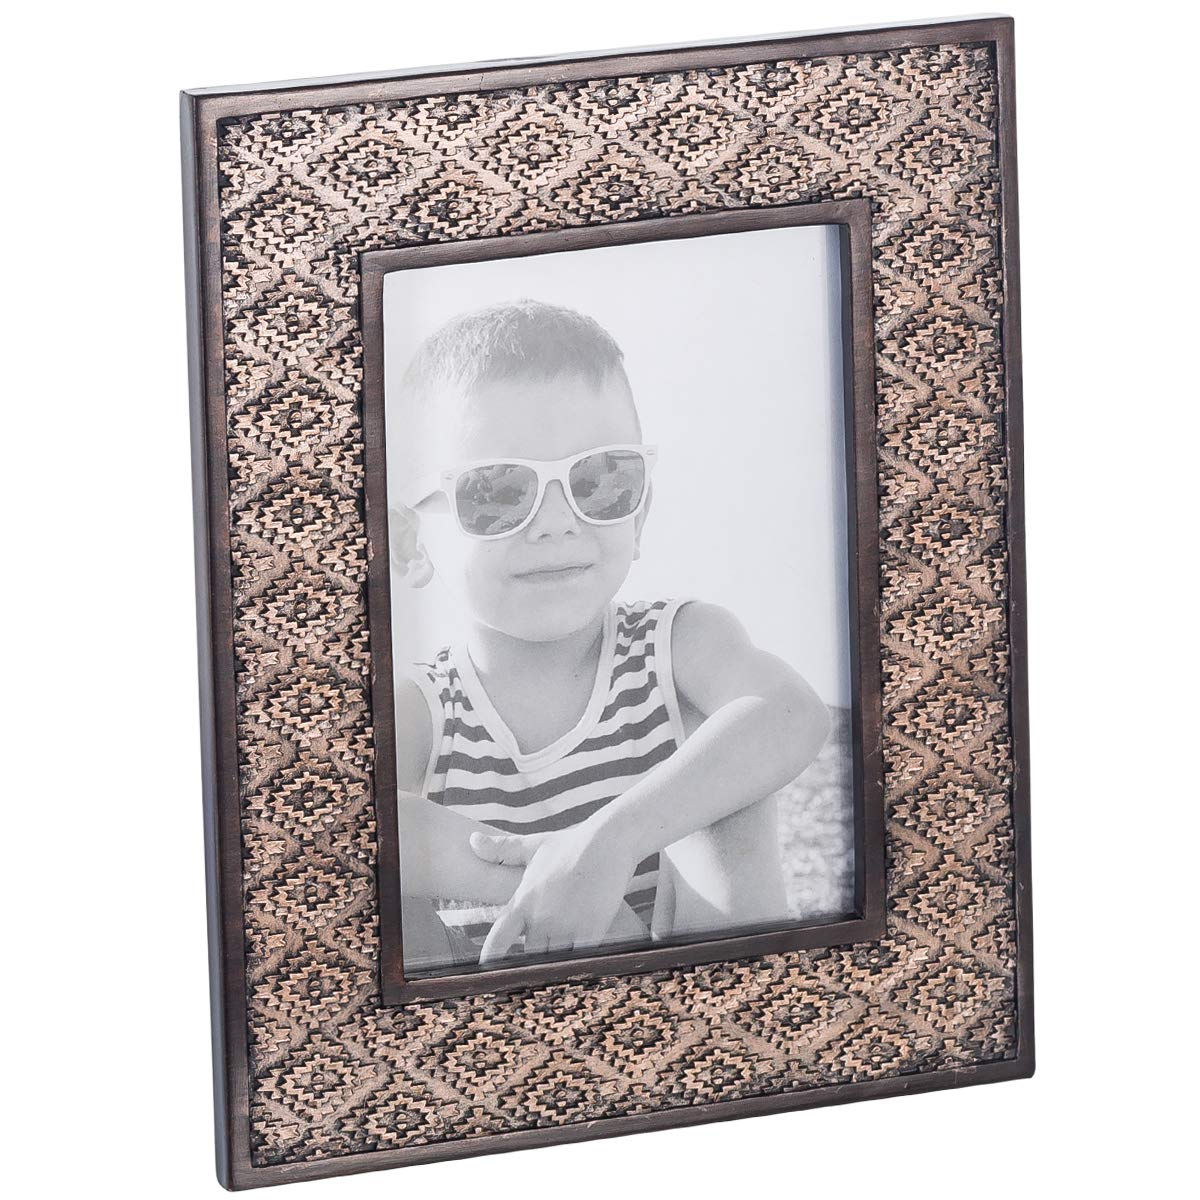 Dublin 5 X 7 Picture Frame - Table Desktop Photo Frame Display with Glass Front & Easel Back, Decorative Decals for Living Room - Gift Idea for Grandma, Grandpa, Mom, Dad (Brown)